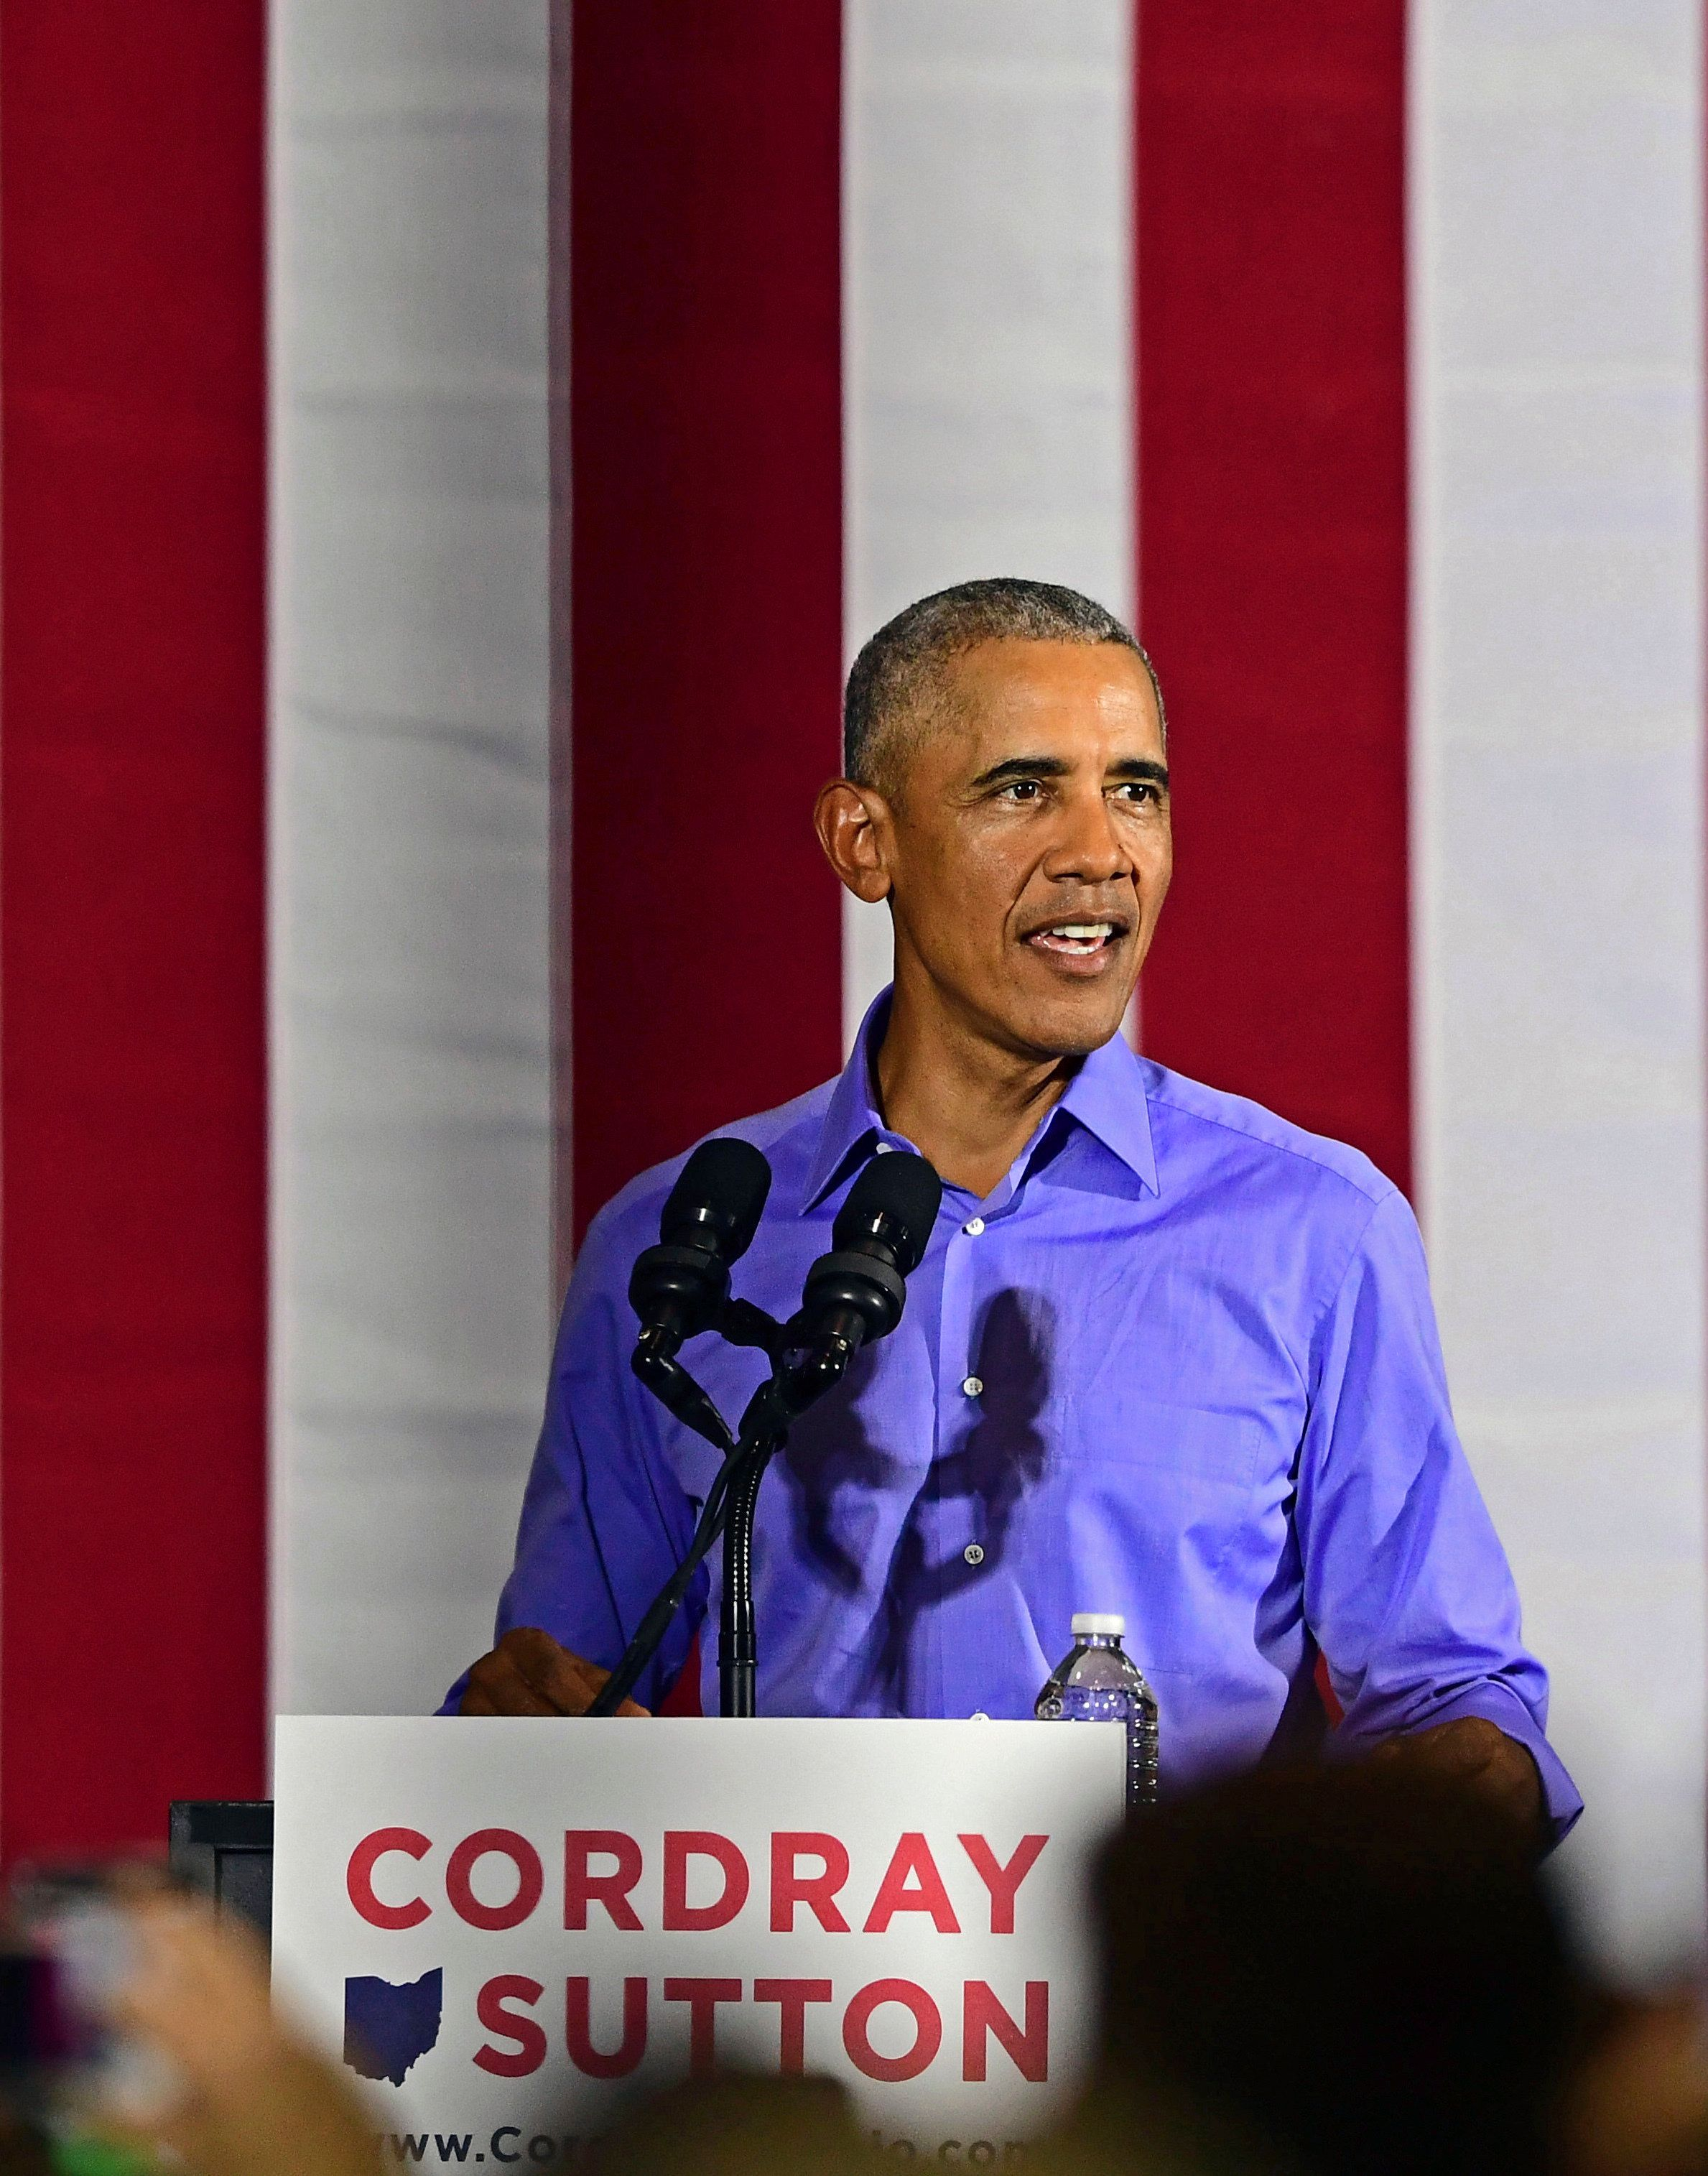 Former President Barack Obama speaks as he campaigns in support of Ohio gubernatorial candidate Richard Cordray, Thursday, Sept. 13, 2018, in Cleveland. Former President Barack Obama was in closely divided Ohio to campaign for Democratic gubernatorial candidate Richard Cordray, running mate Betty Sutton, U.S. Sen. Sherrod Brown and the party's statewide slate.(AP Photo/David Dermer)